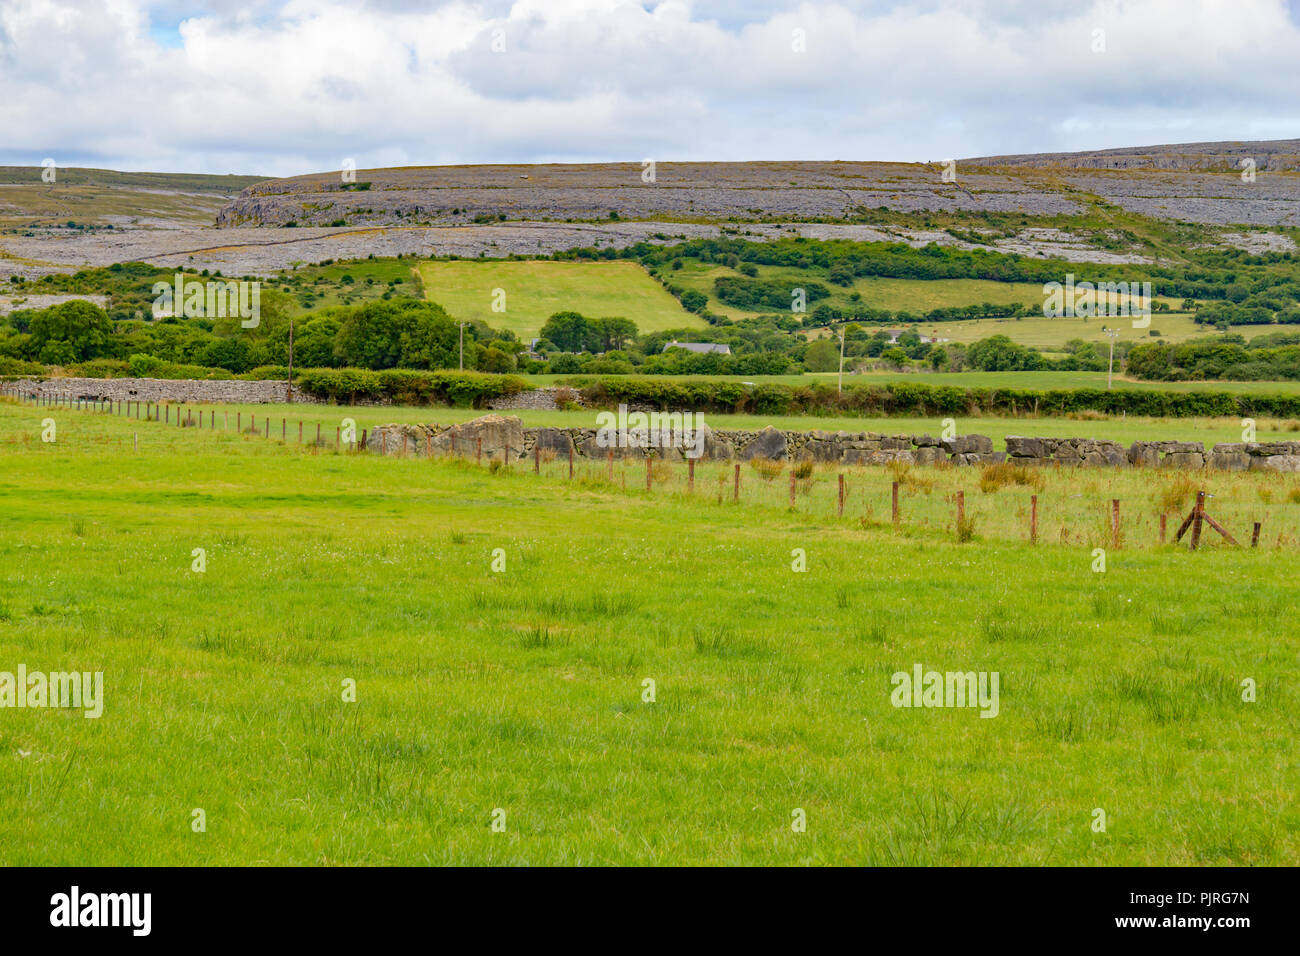 Farm field with Mountain and vegetation in Ballyvaughan, Ireland - Stock Image